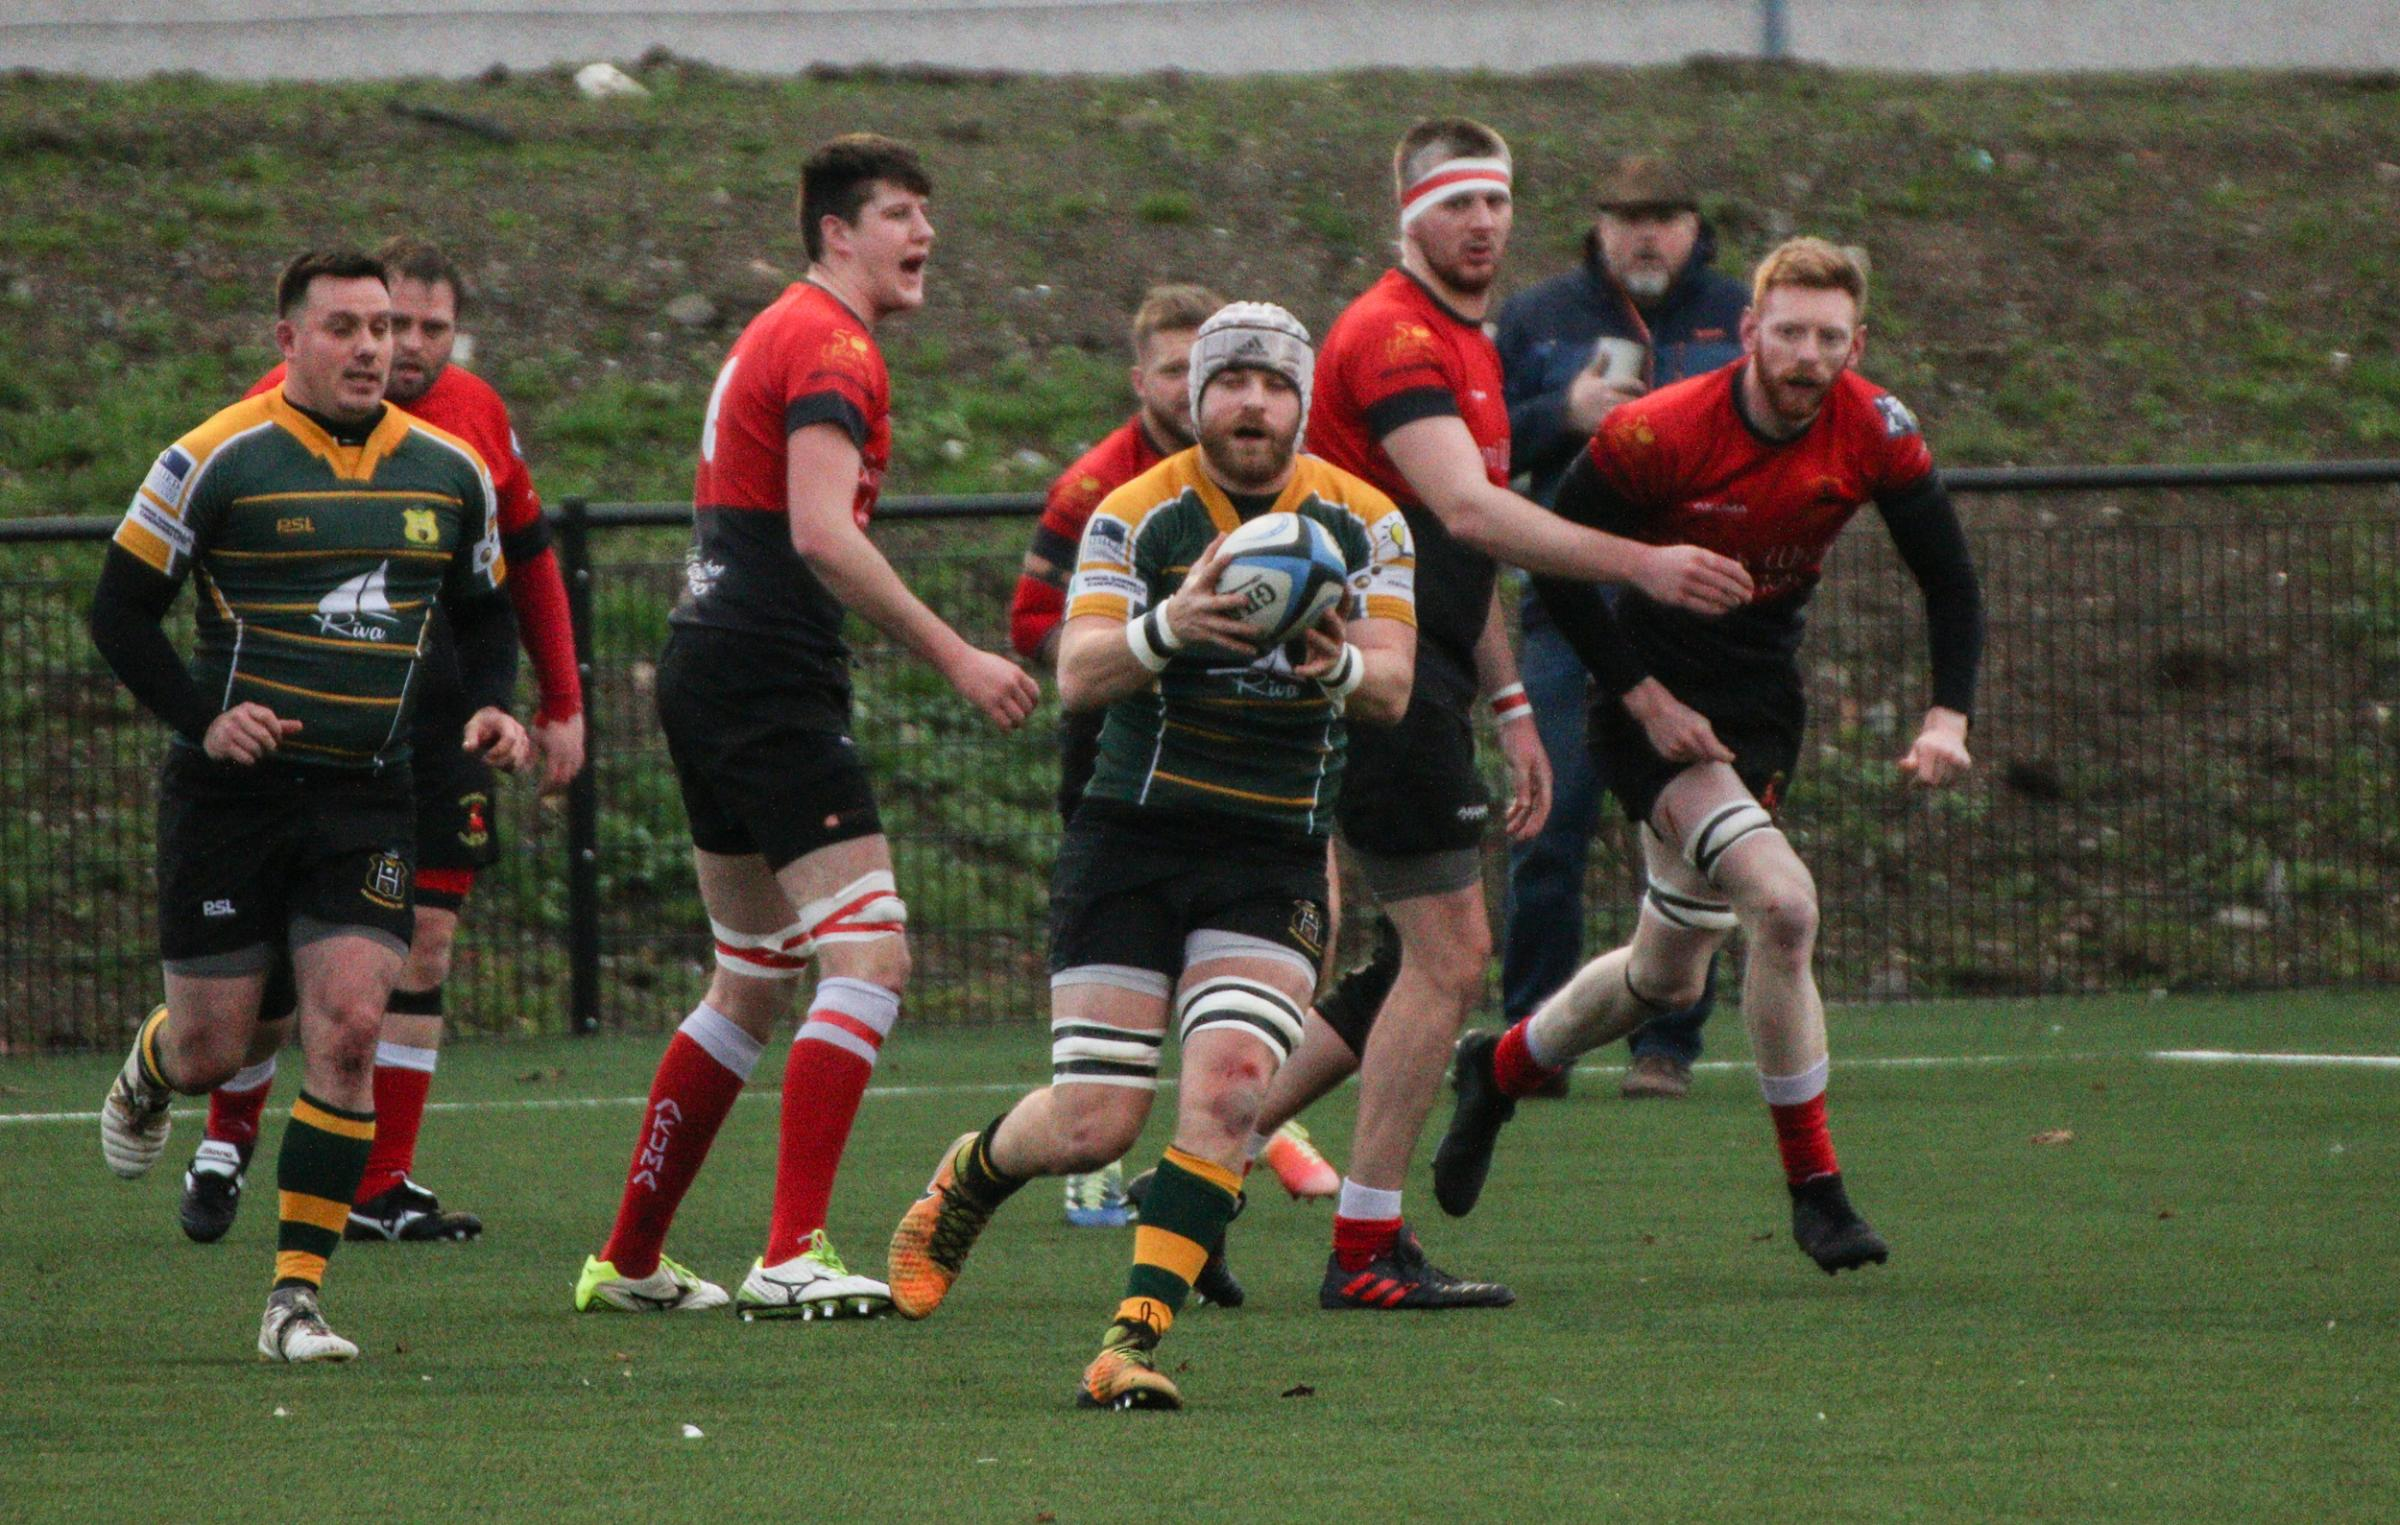 Action from Helensburgh's 31-19 win away to Clydebank on Saturday (Pic - Robert Wilson)